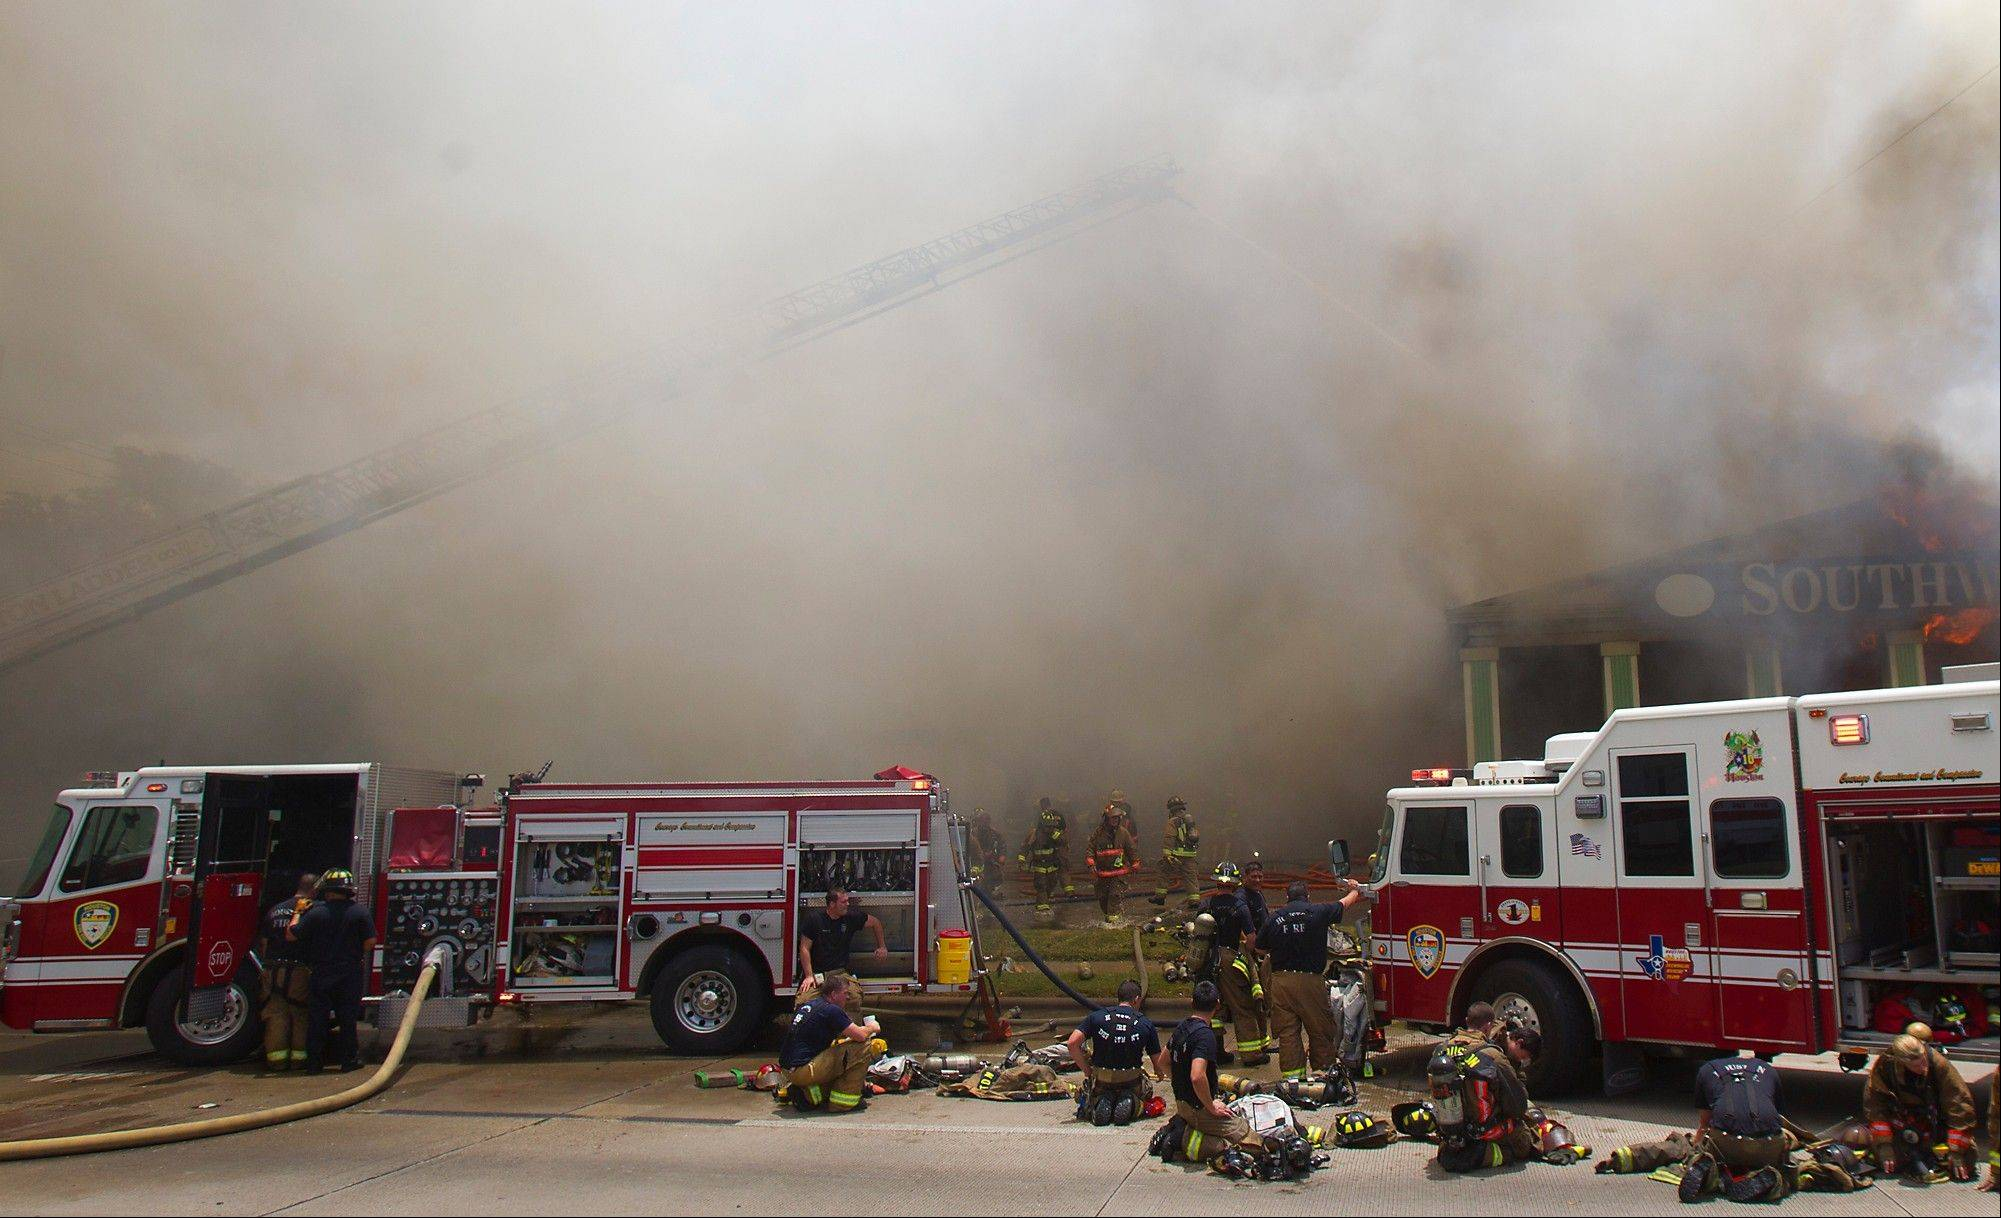 The Friday fire that engulfed a Houston motel has killed four firefighters.